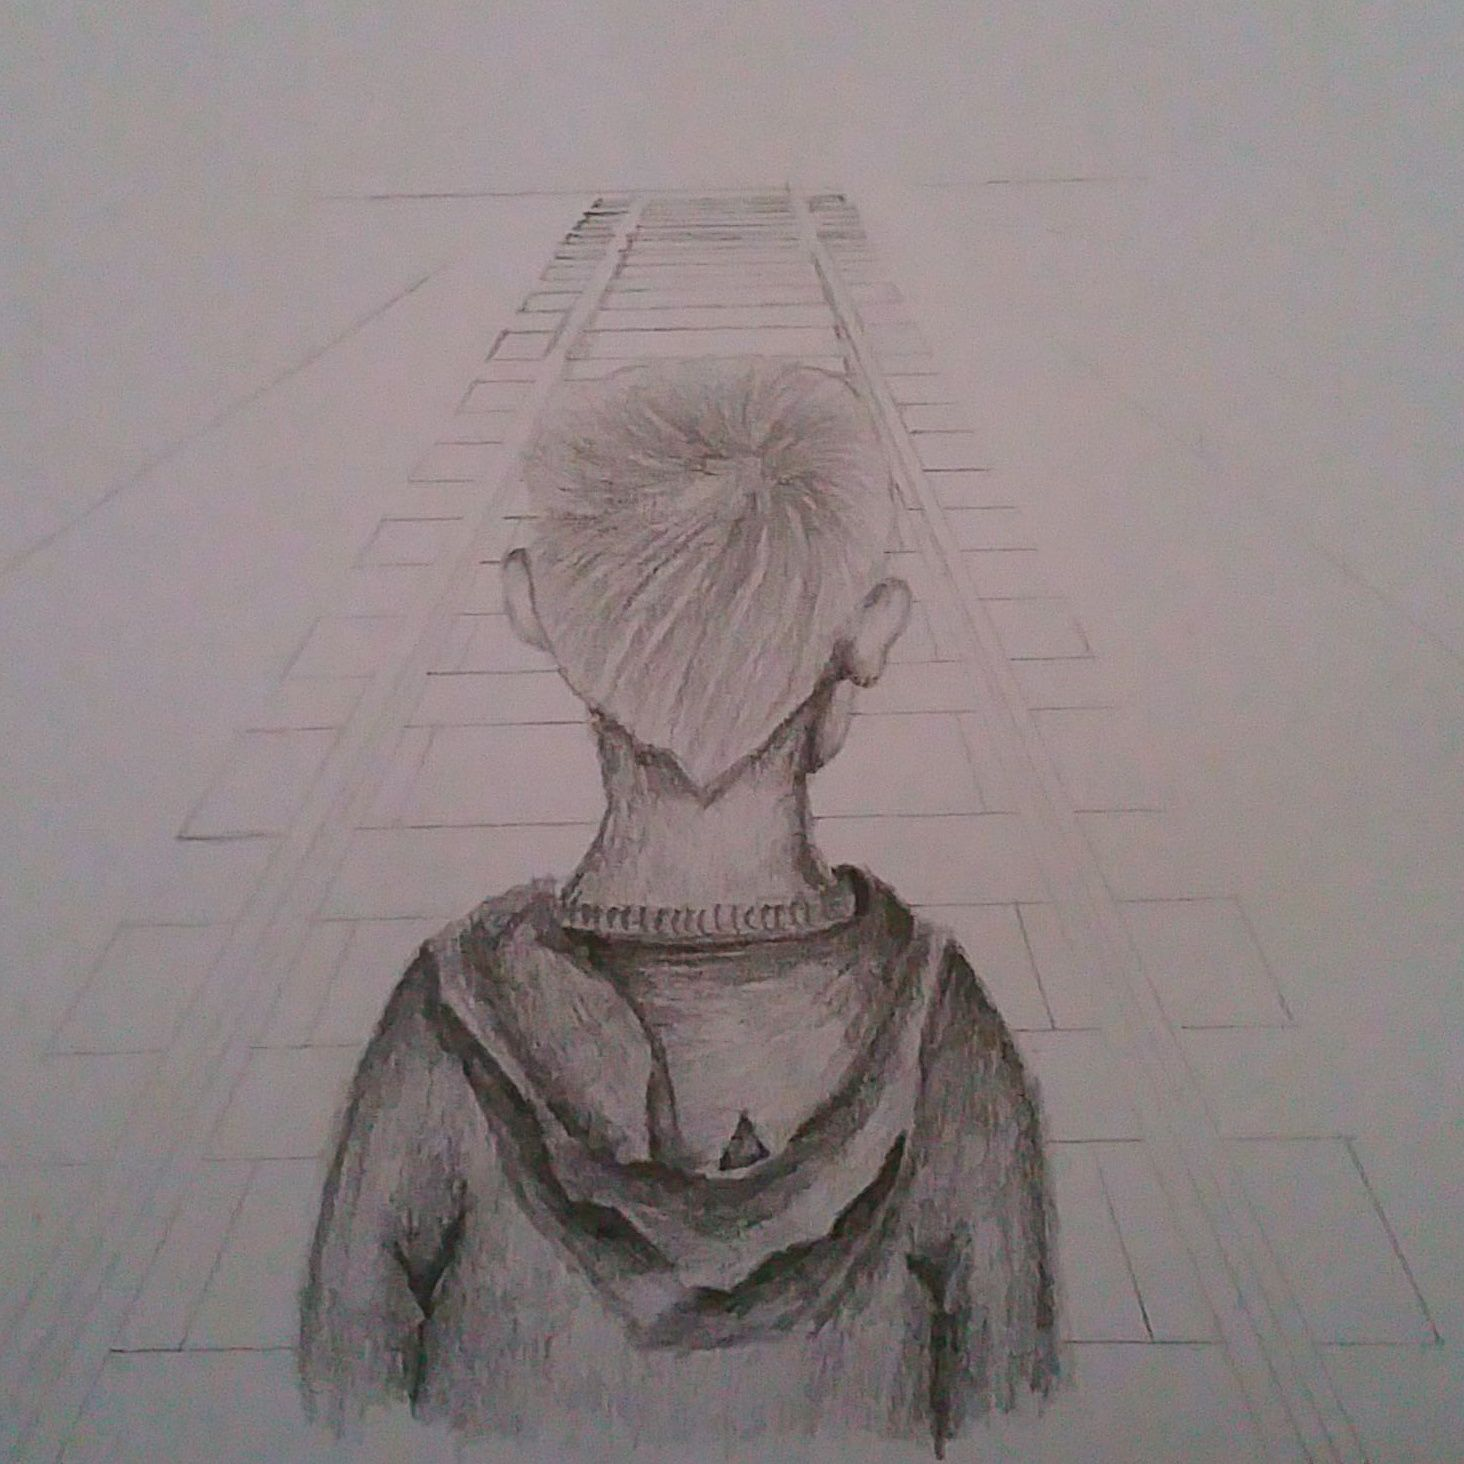 Stage 2 of my sketch theme orphans arts sketch pencil railway pennyappeal orphan competition artcompetition child shading interpretation